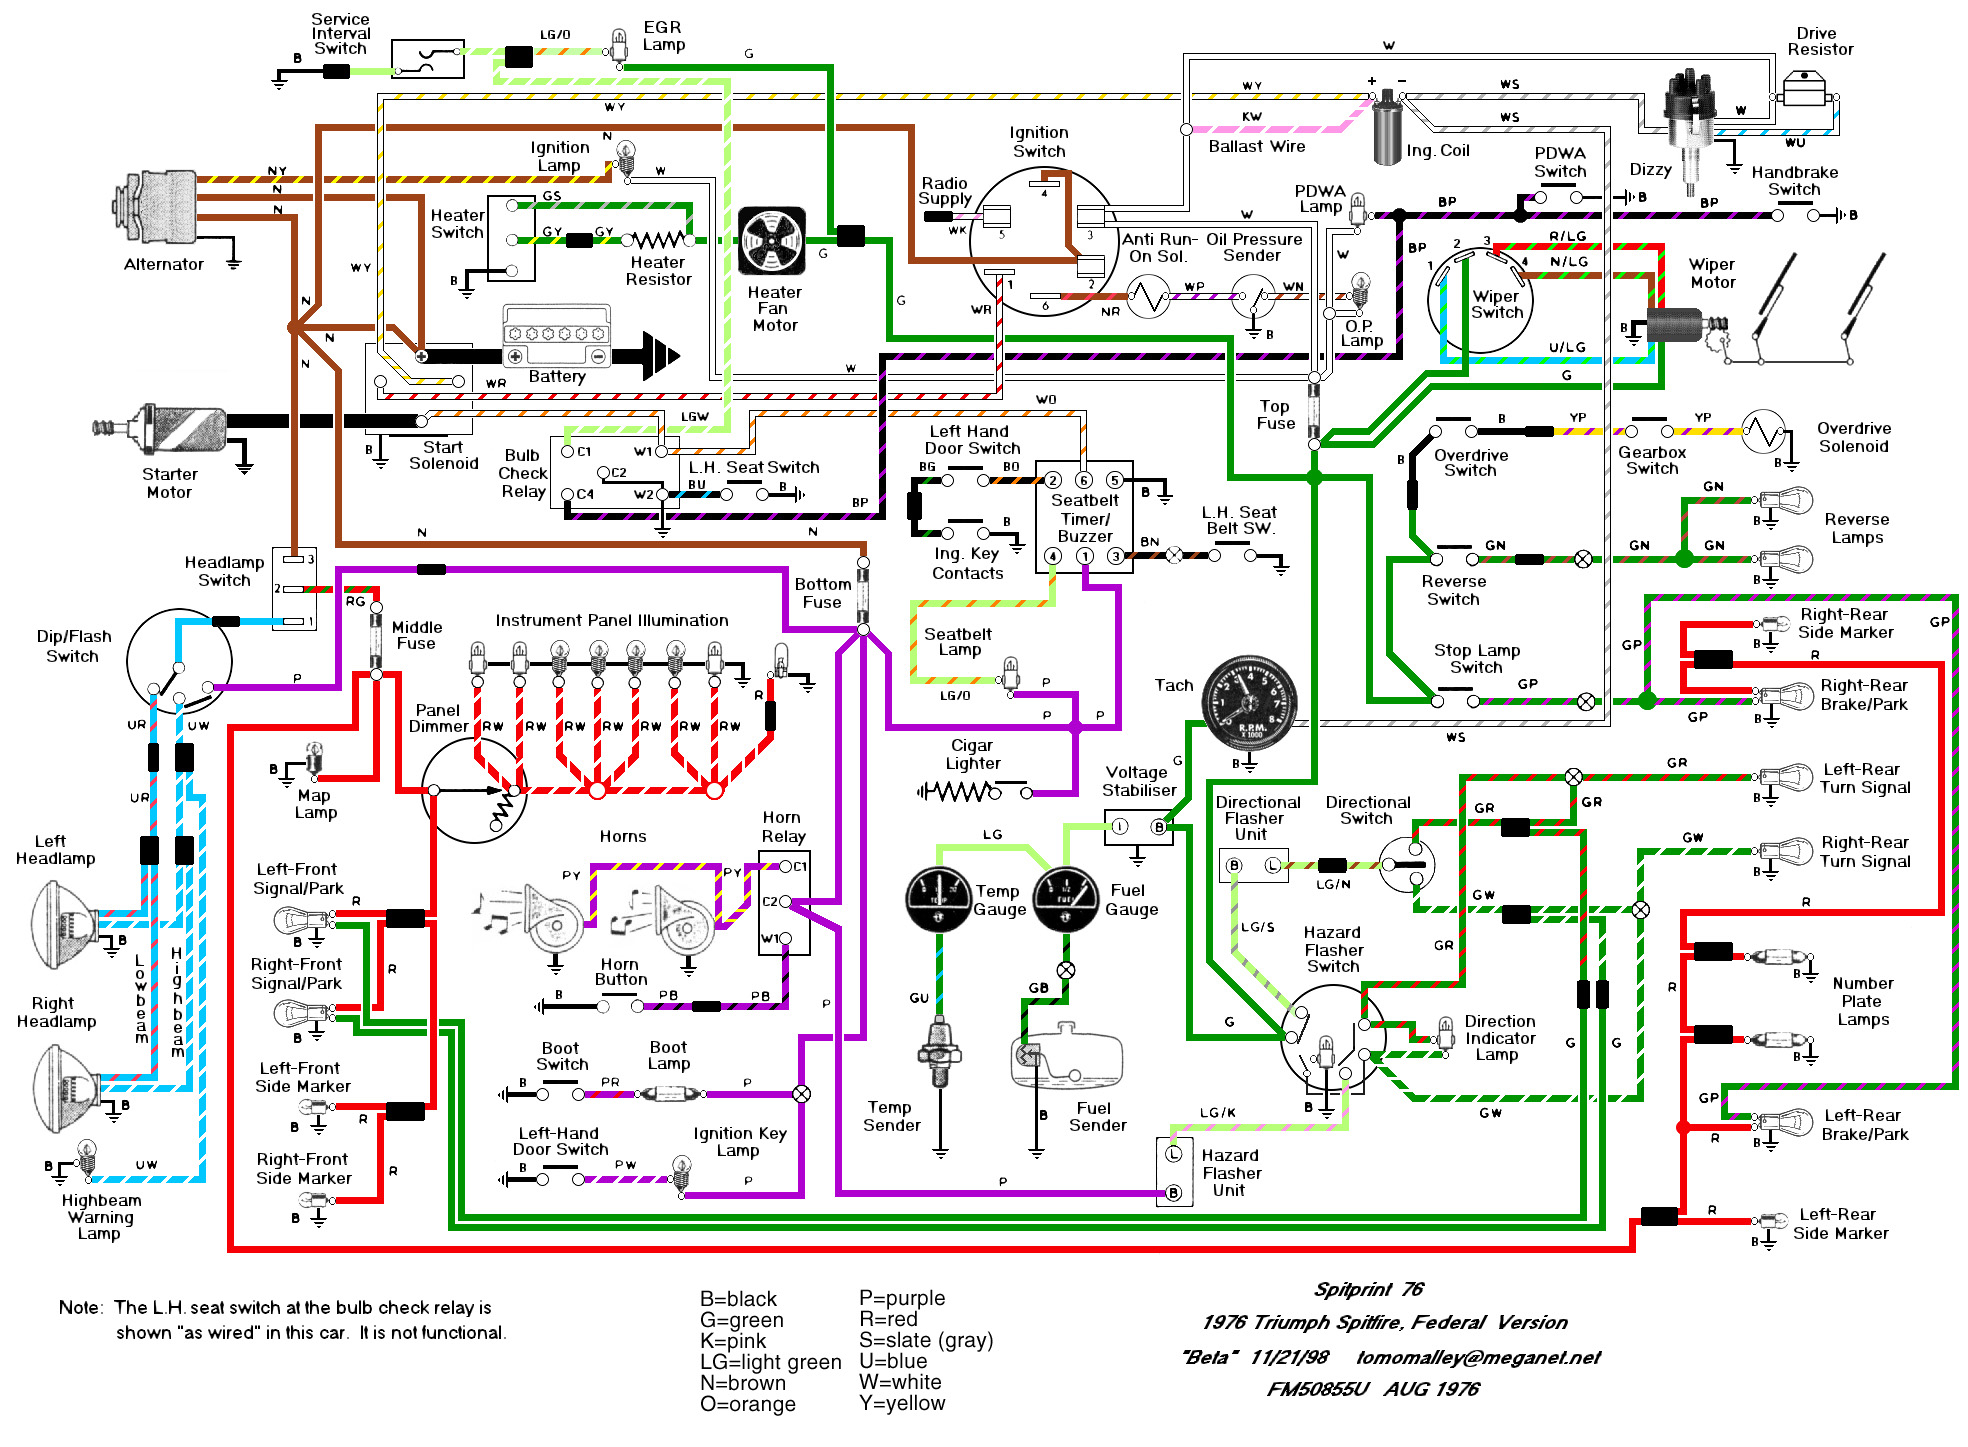 national tradewinds rv wiring diagram free picture 50 30 20 rv wiring diagram free download ignition coils and proper system voltage??? : spitfire ...